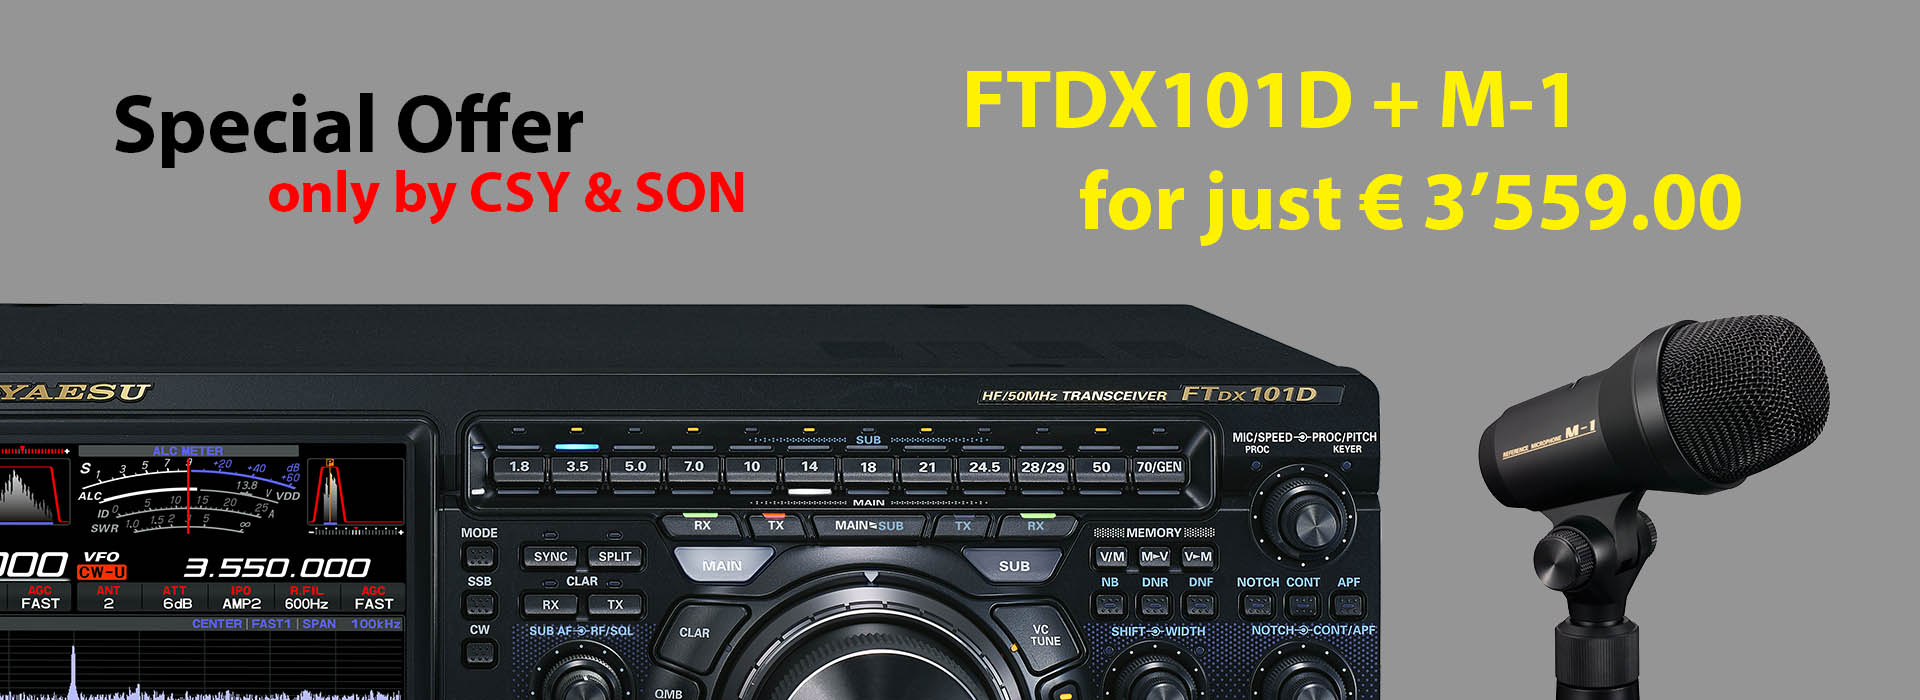 Special Pack FTDX101D + M-1